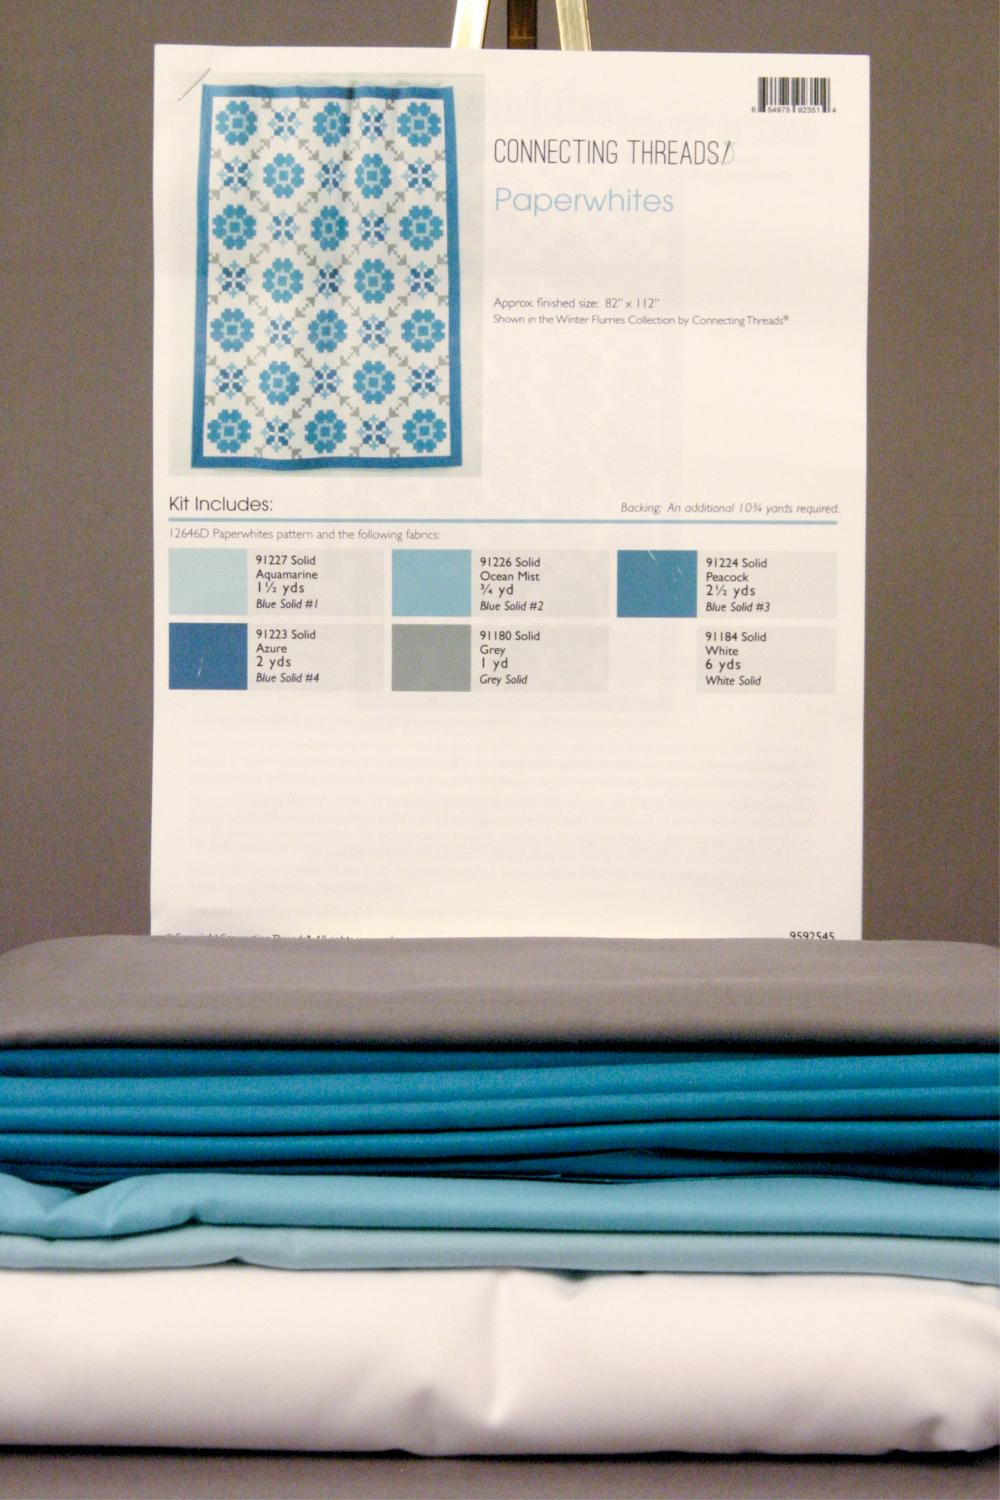 Cora's Quilts Pattern - Instructions - Material